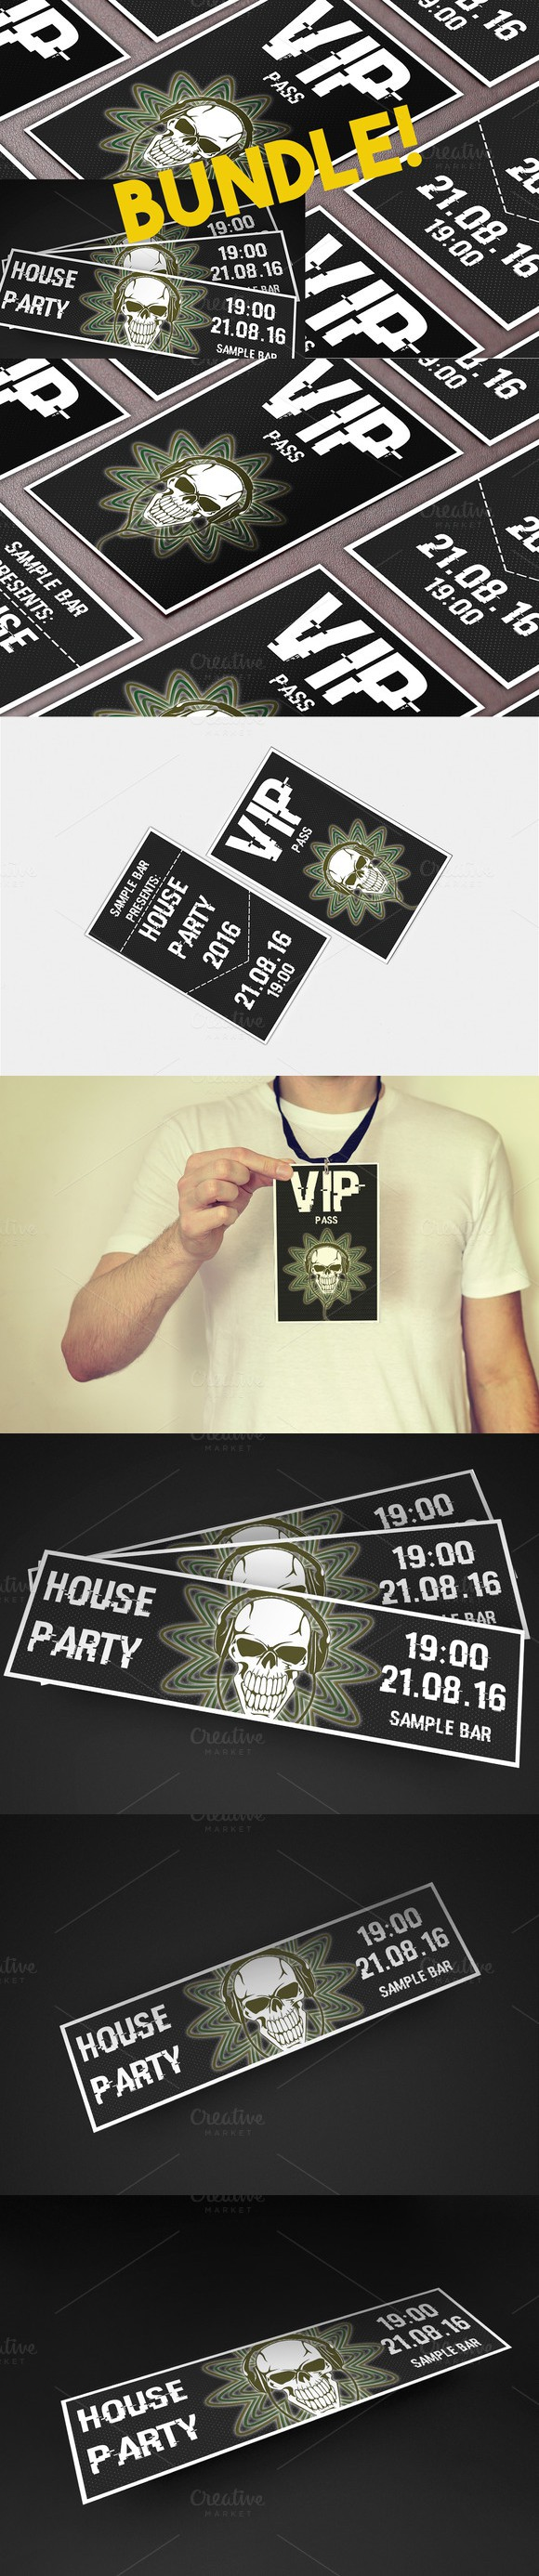 House Party Ticket&VIP pass bundle | Vip pass and Party tickets